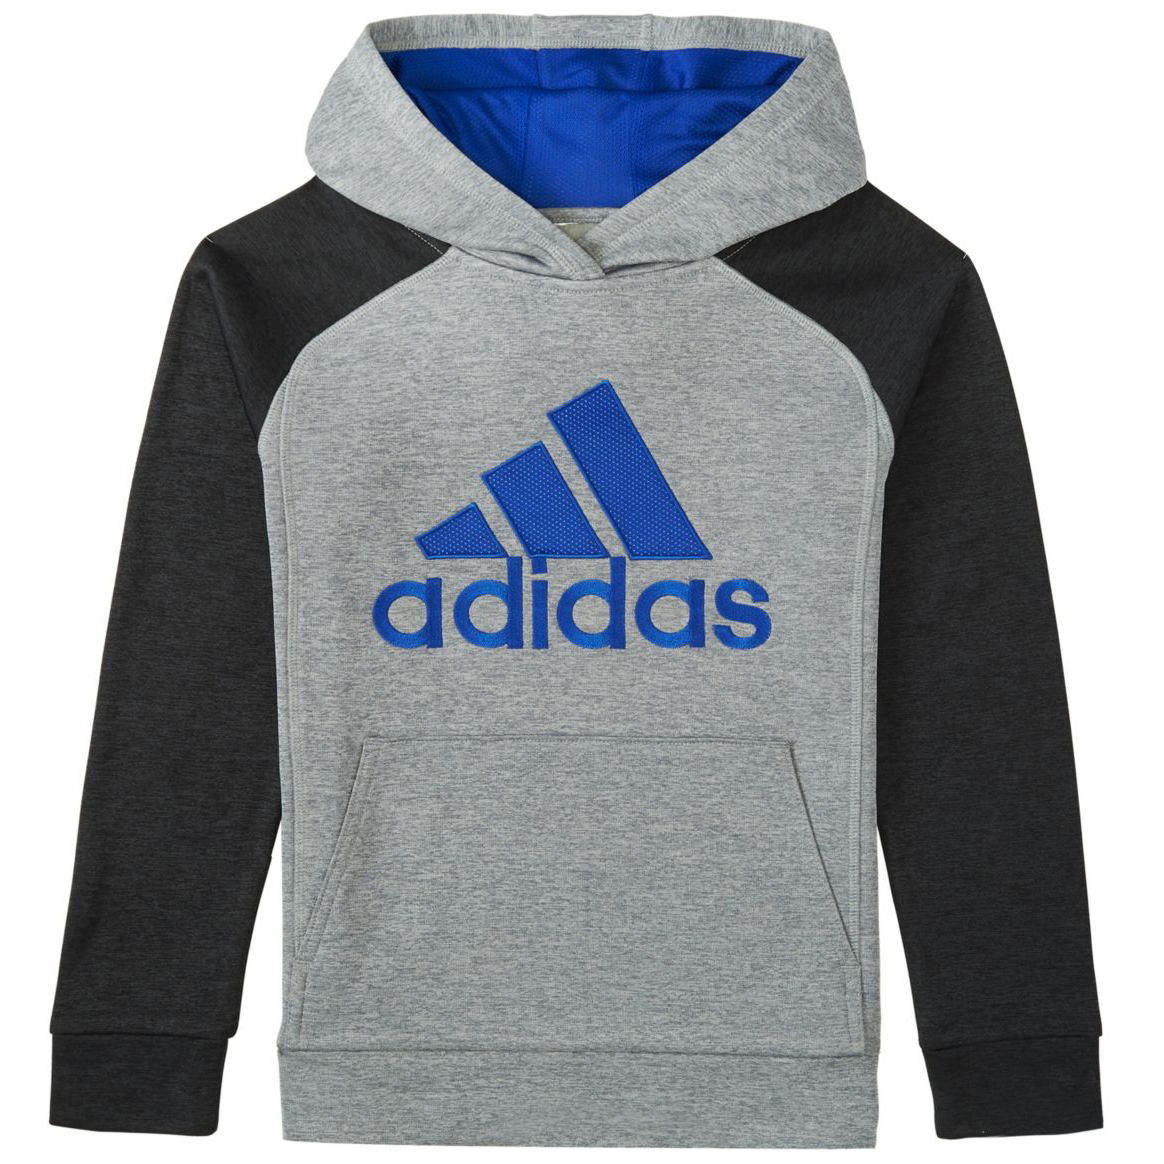 Details about Adidas Little Boys' Fusion Pullover Hoodie